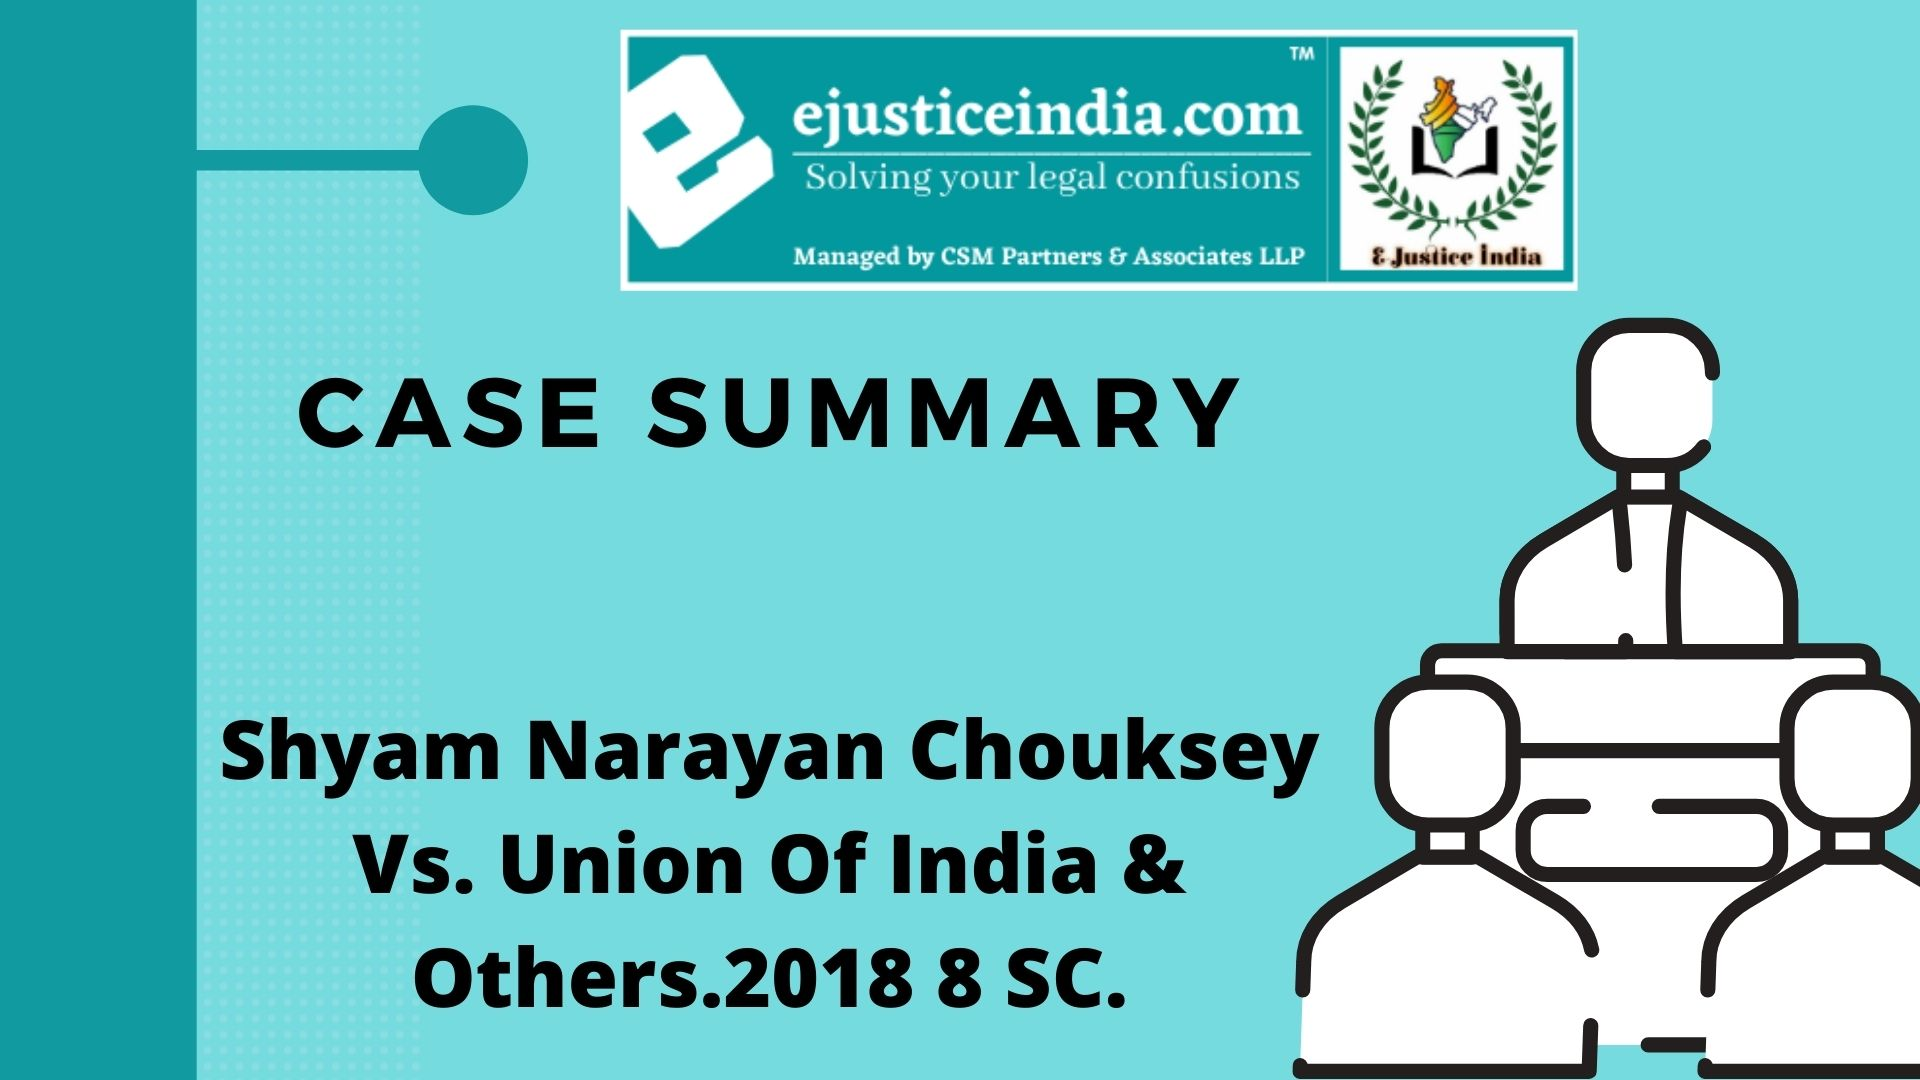 Shyam Narayan Chouksey Vs. Union Of India & Others.2018 8 SC.